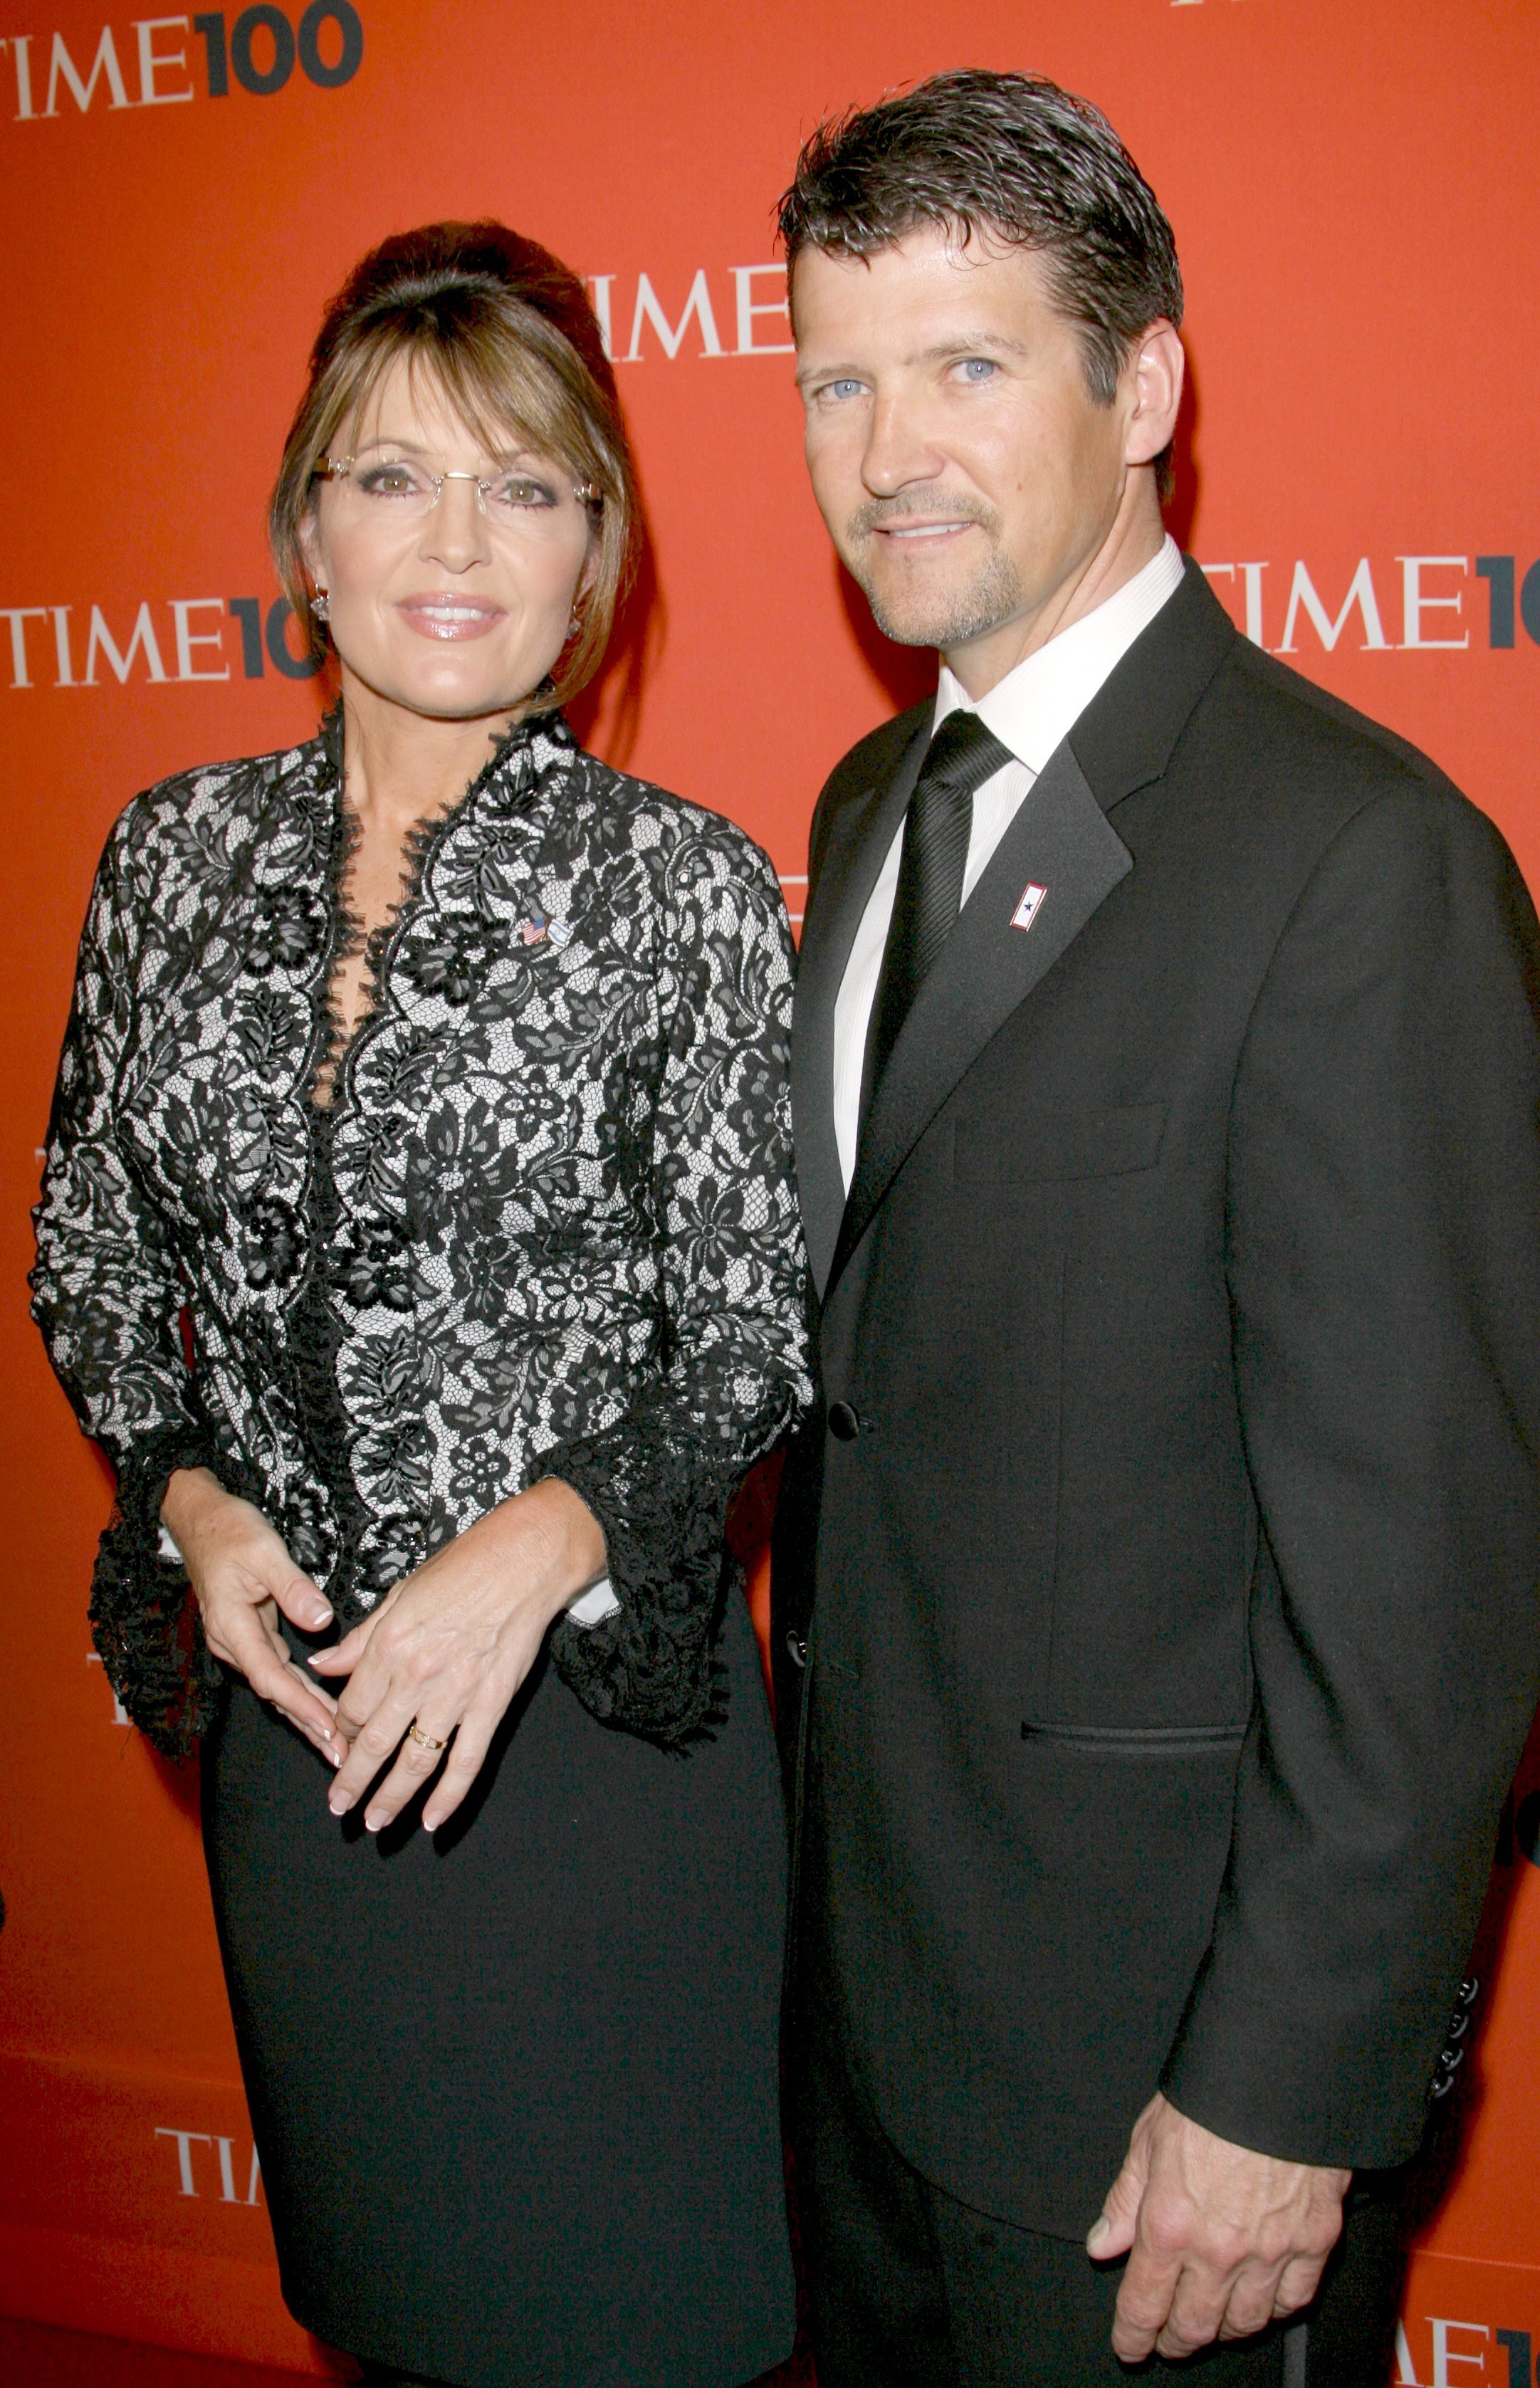 Sarah Palin and Todd Palin Finalize Divorce